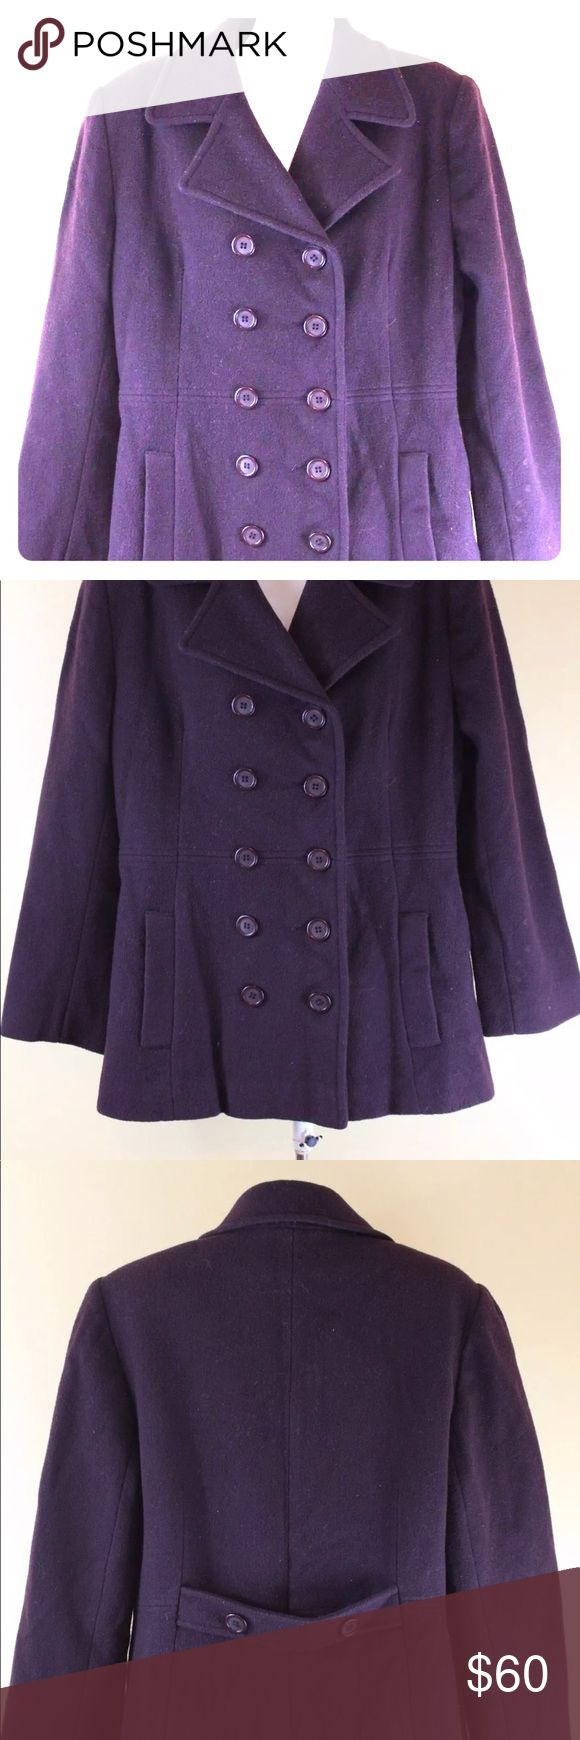 St. John's Bay Authentic Women's Wool Coat St. John's Bay Authentic Women's Wool Jacket/Coat/Sweater Size 10P Petite Color is Maroon. Lightly used in excellent condition! Saint John's Bay Active Jackets & Coats Pea Coats